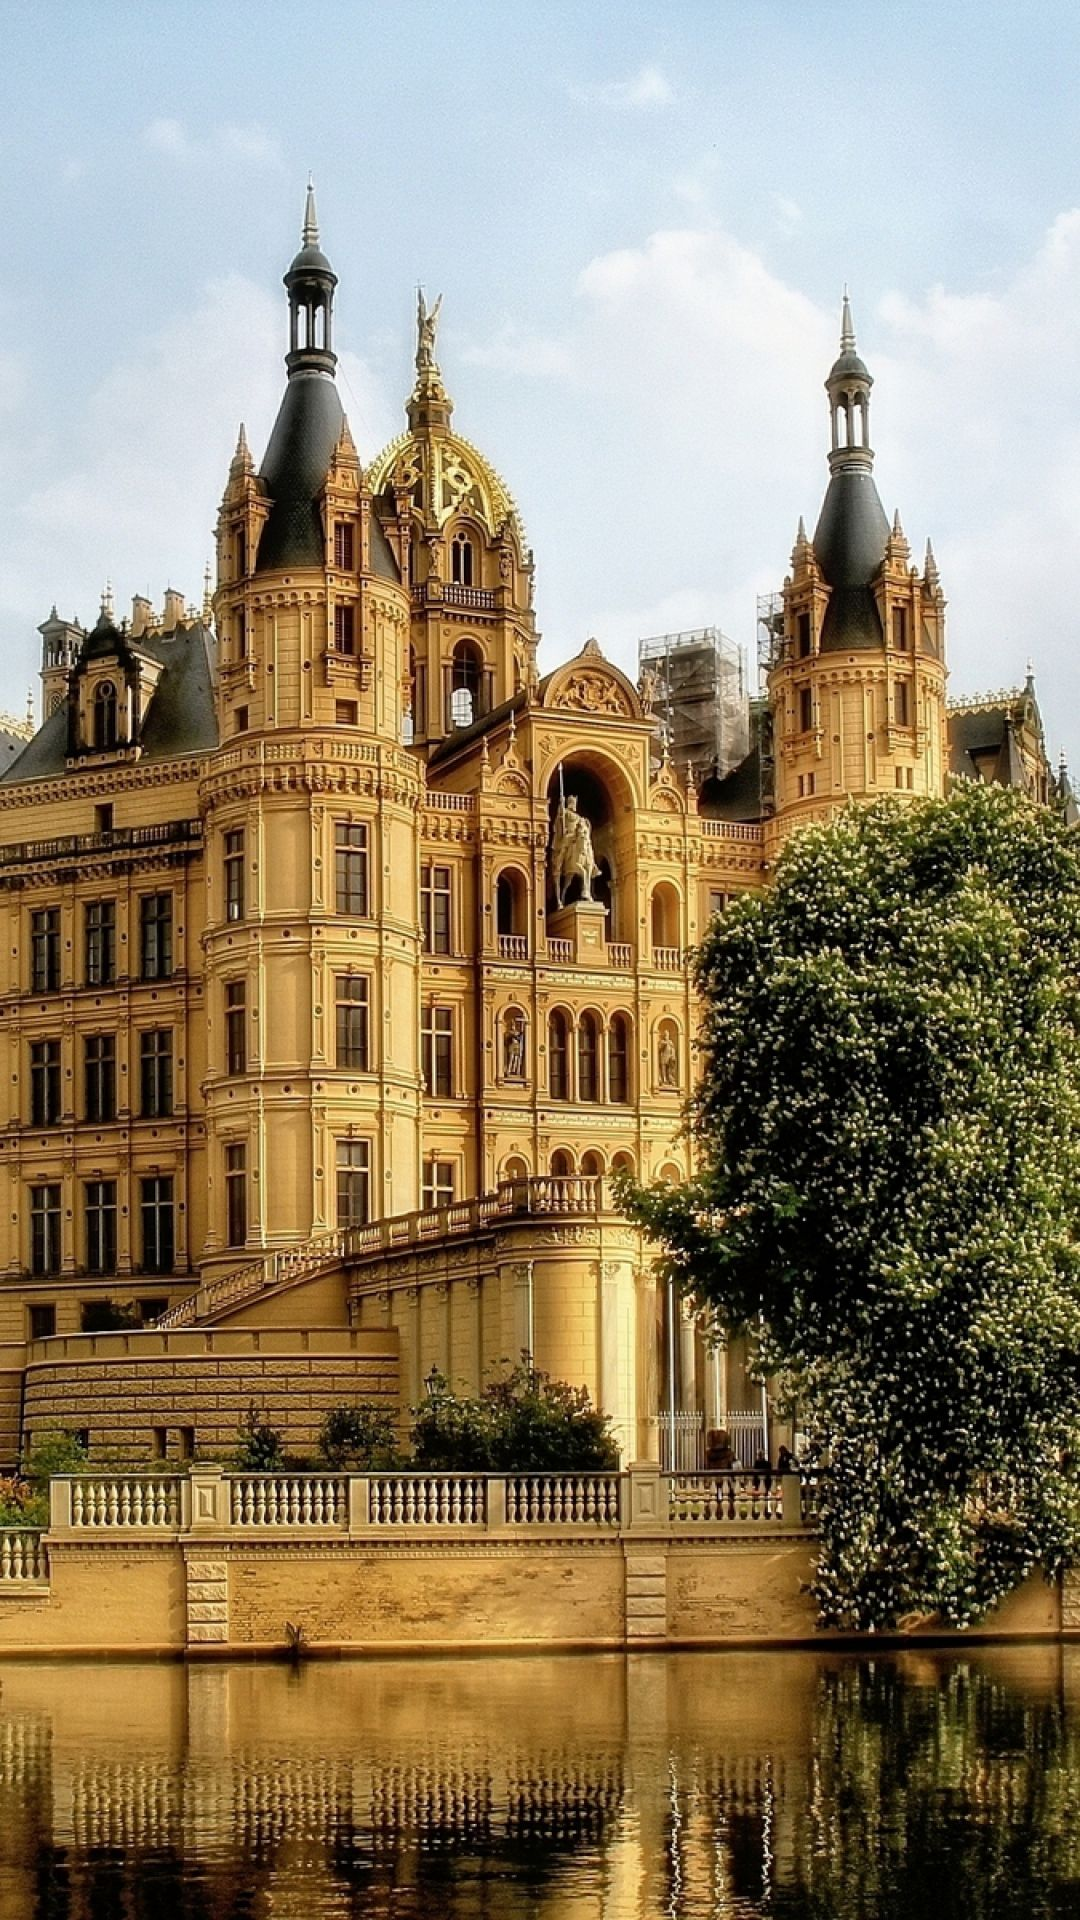 Schwerin Palace Or Schwerin Castle Is A Palatial Schloss Located In The City Of Schwerin The Capital Of Mecklenbur Germany Castles Castles To Visit Schwerin